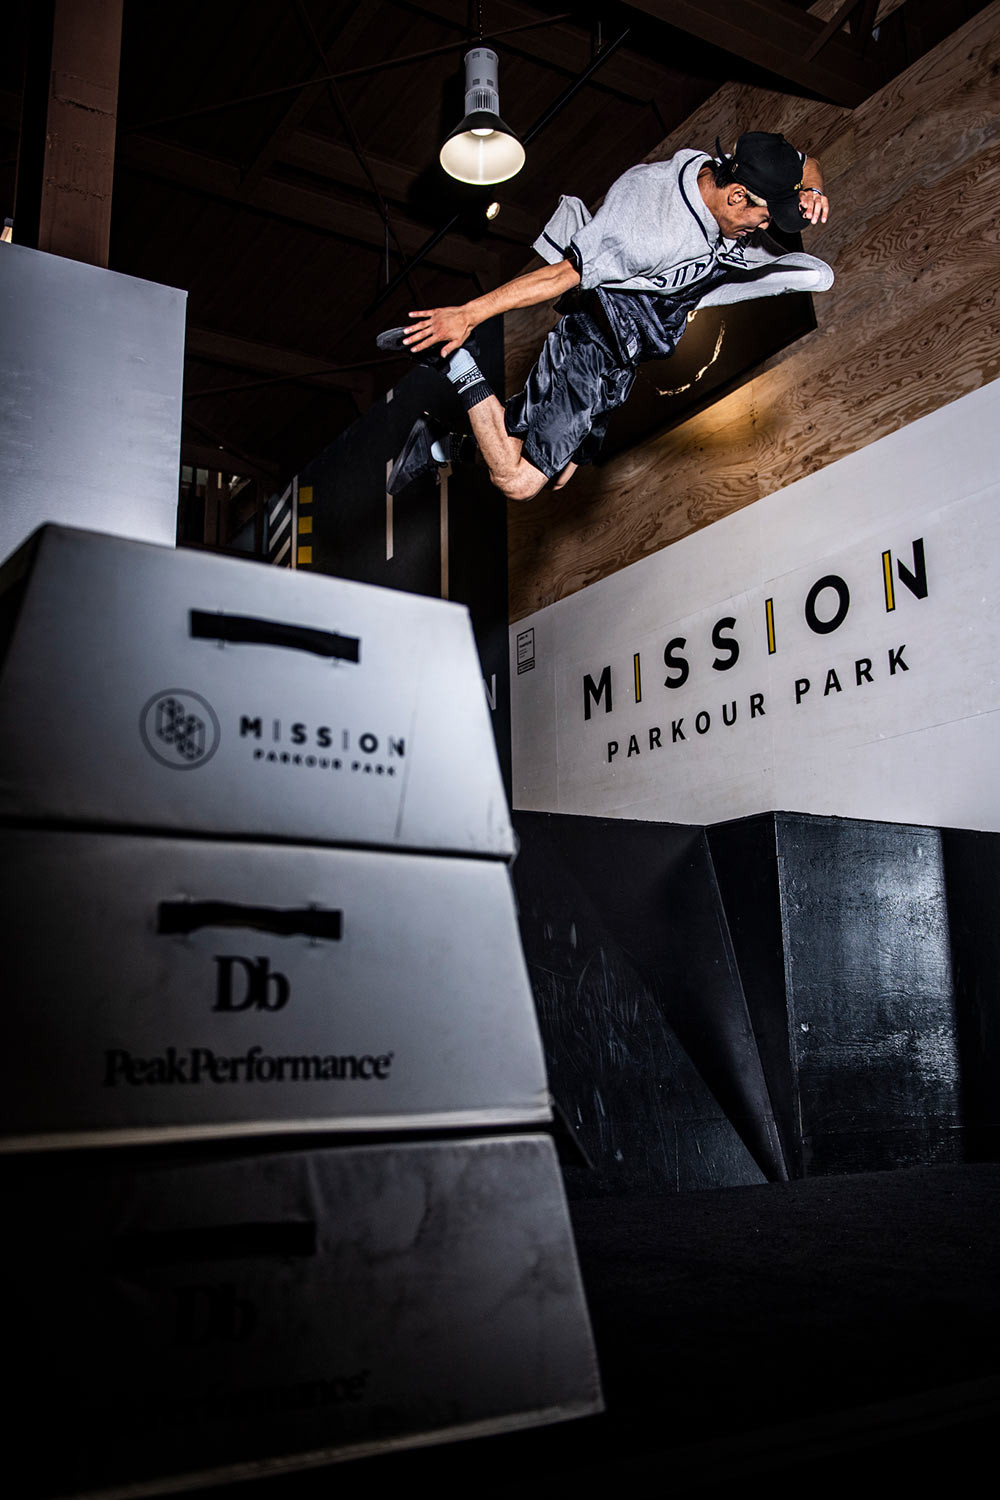 MISSION PARKOUR PARK TOKYOにてTAISHIスチール撮影